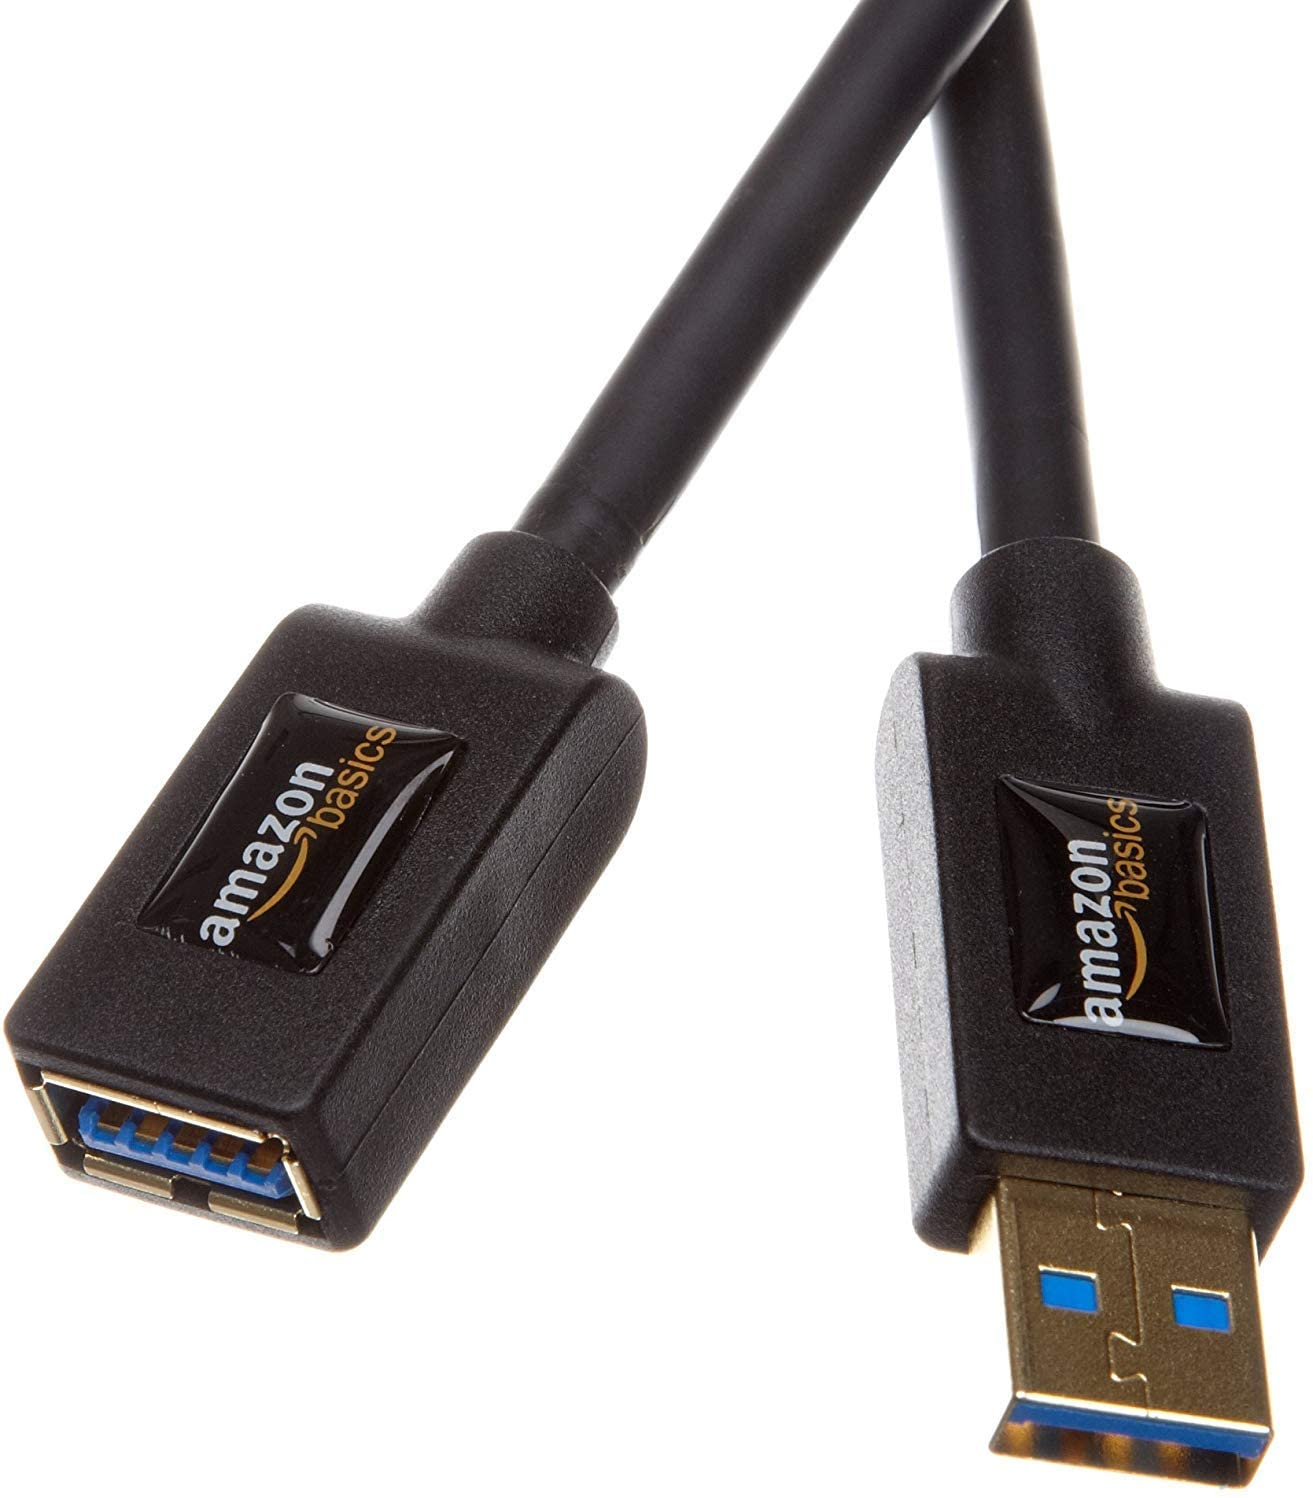 Amazon Basics USB 3.0 Extension Cable - A-Male to A-Female Adapter Cord - 3.3 Feet (1 Meter)